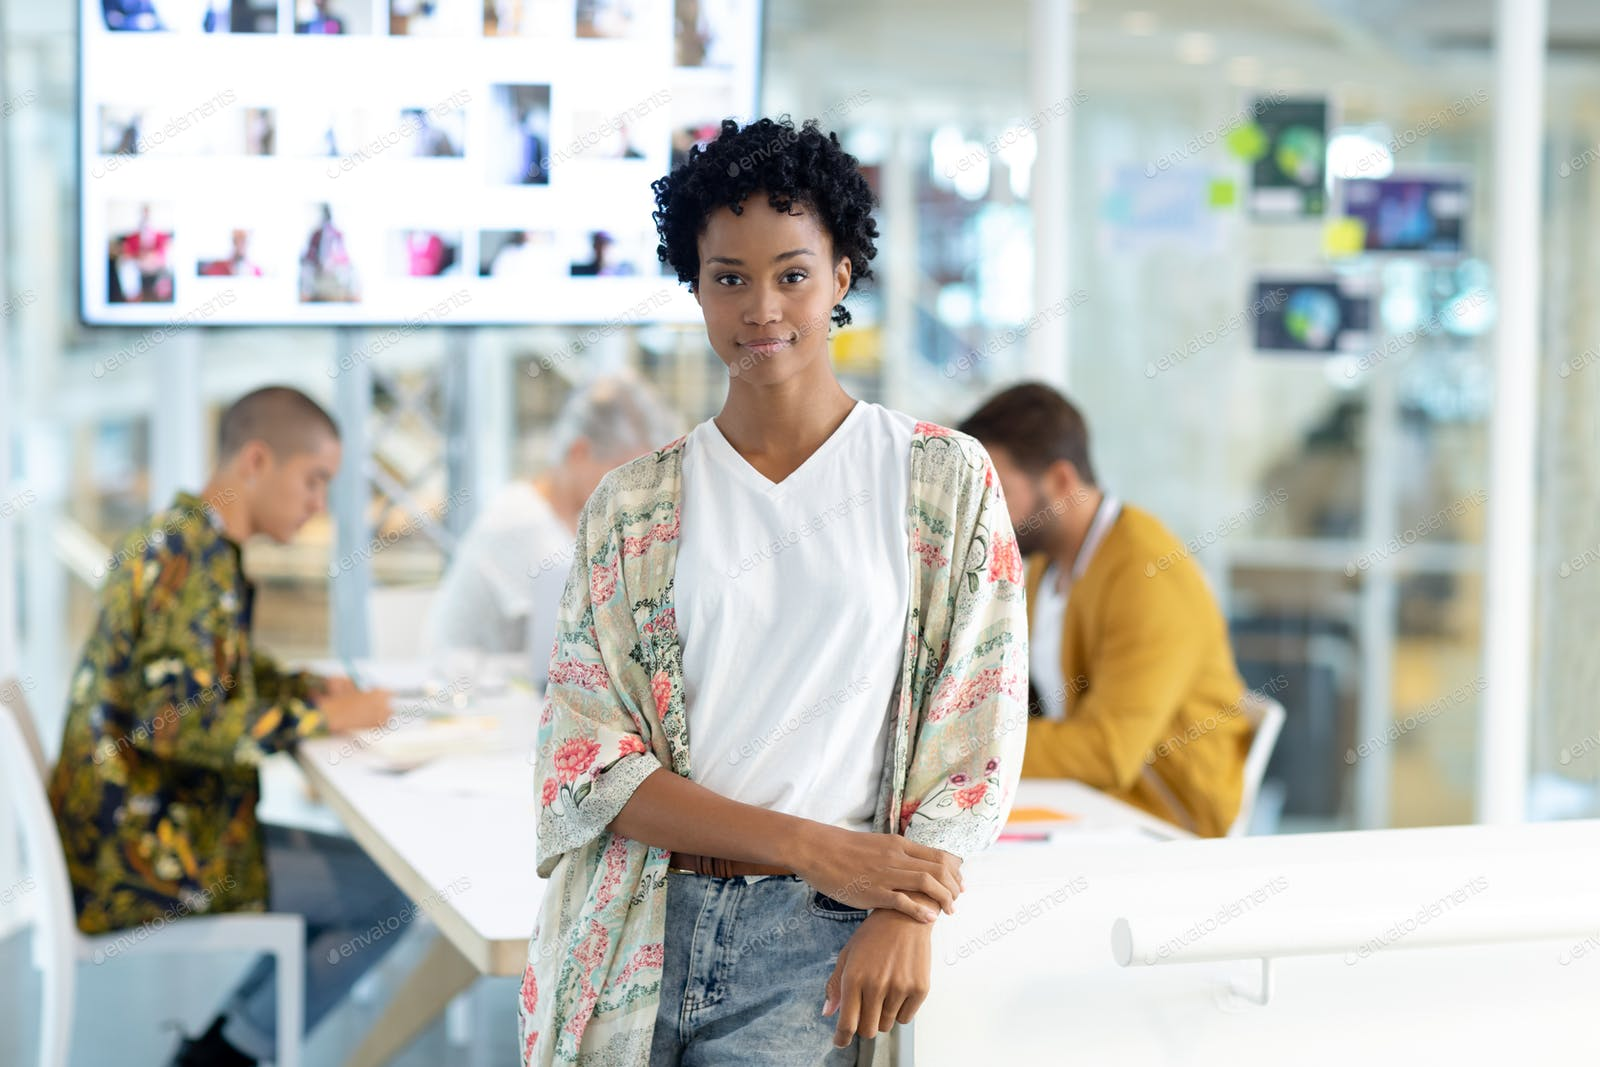 African American Female Fashion Designer Leaning On A Table While Diverse Business People Discussing Photo By Wavebreakmedia On Envato Elements